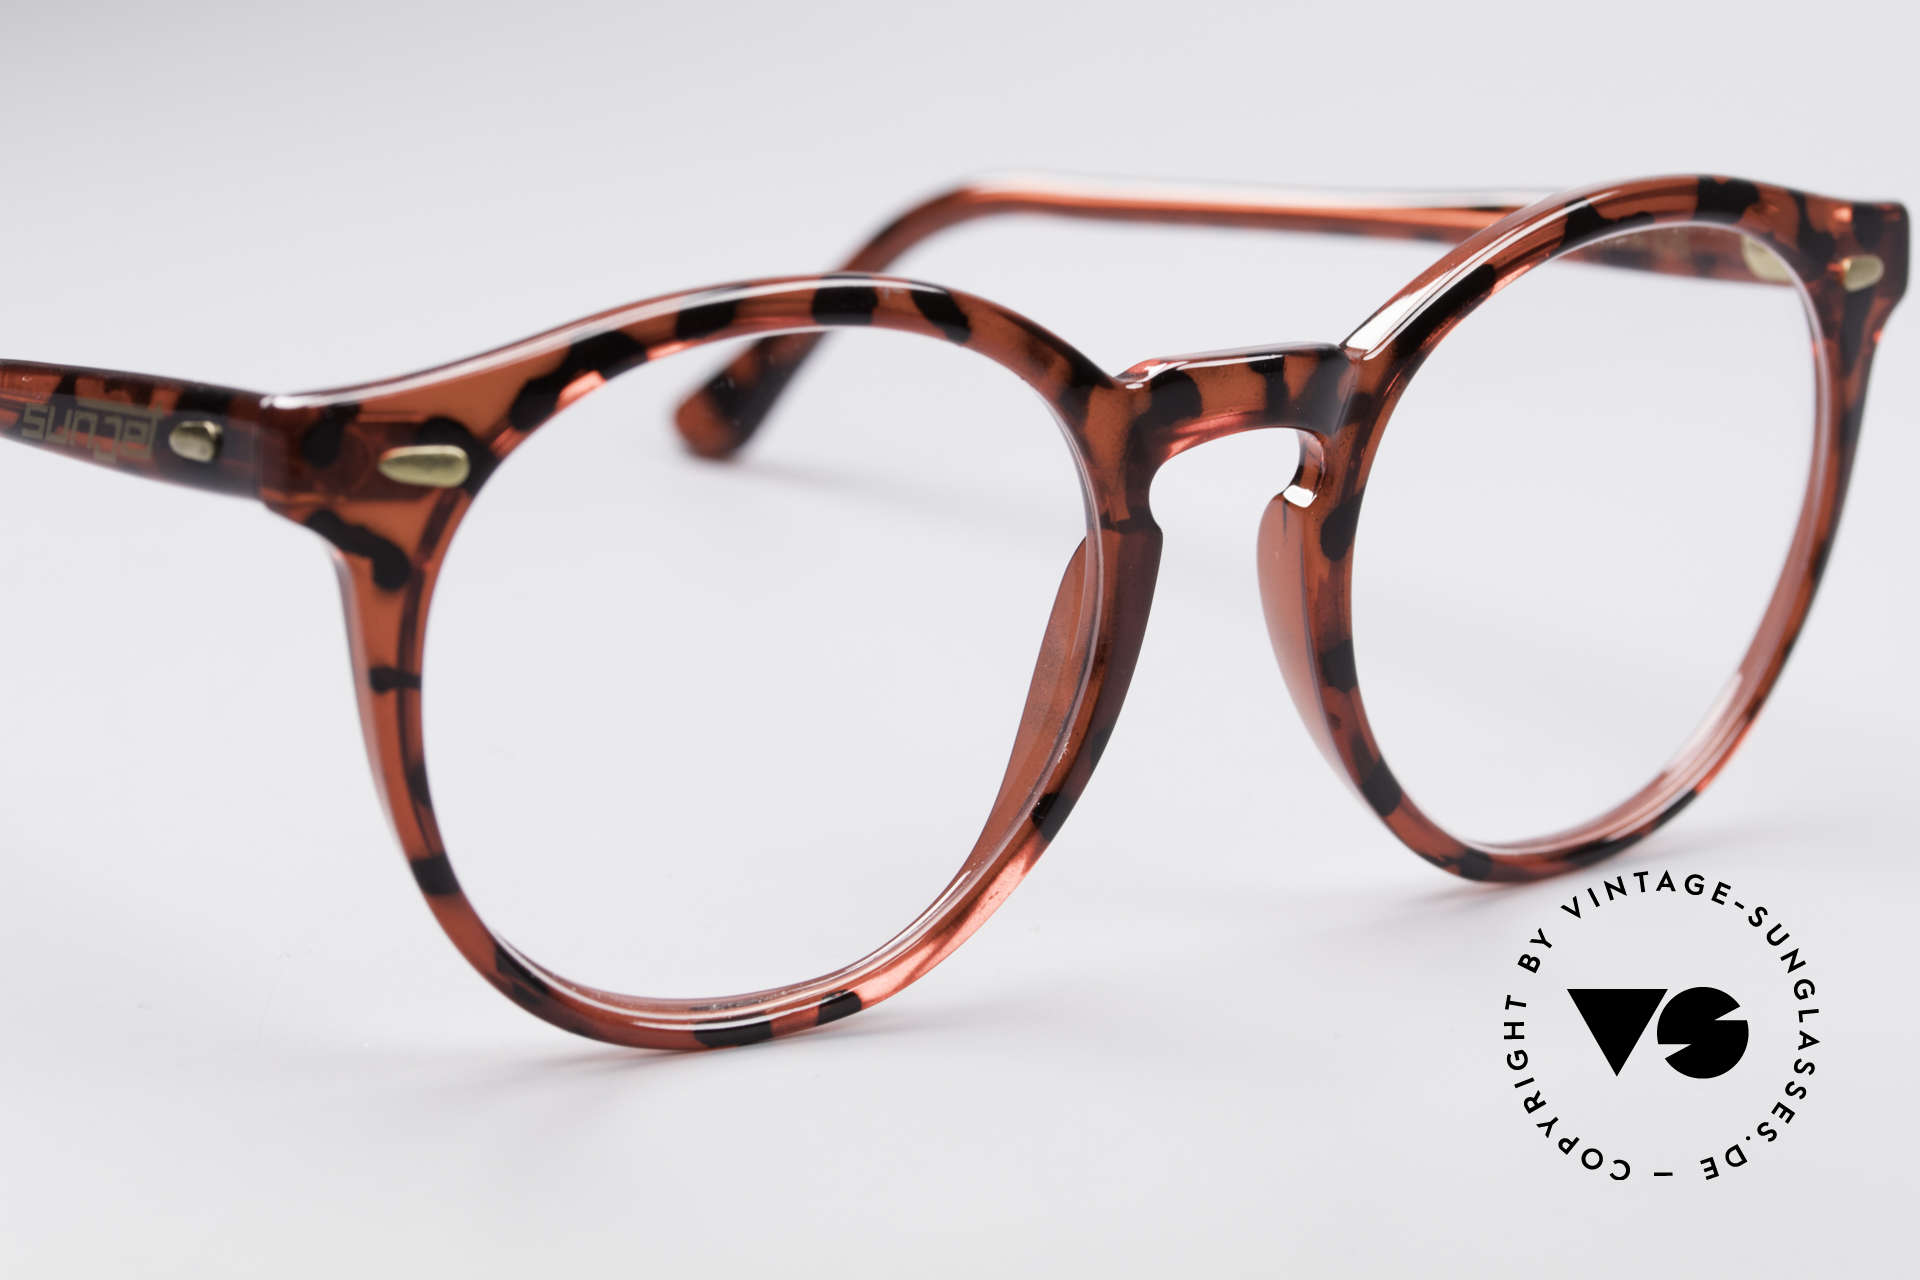 Carrera 5256 Johnny Depp Glasses, unworn rarity from app. 1995 in SMALL-MEDIUM size, Made for Men and Women